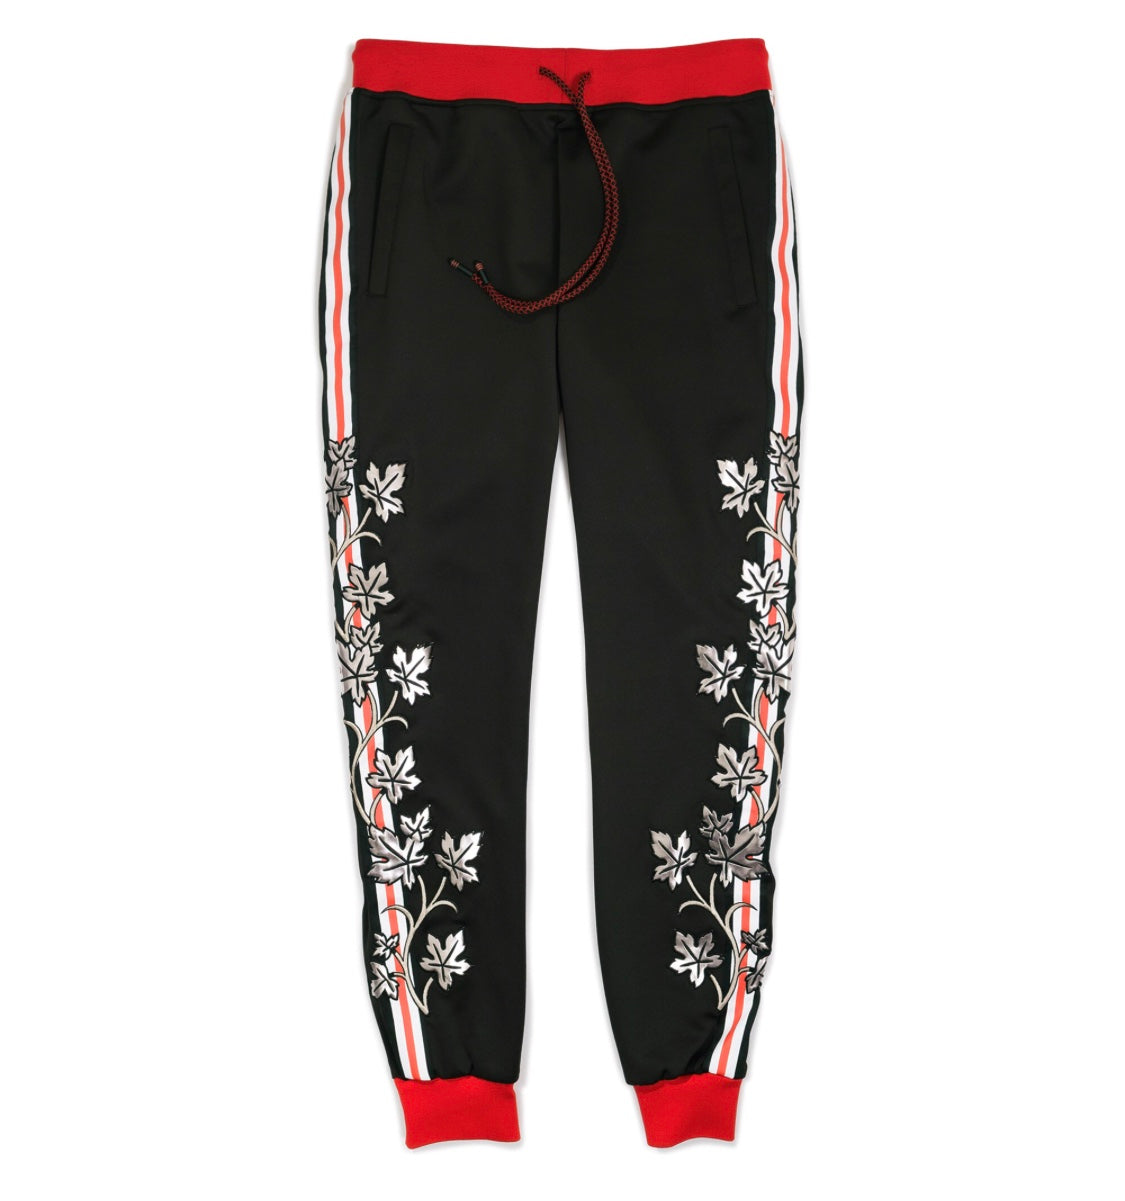 Reason Vines Track Pant in Black